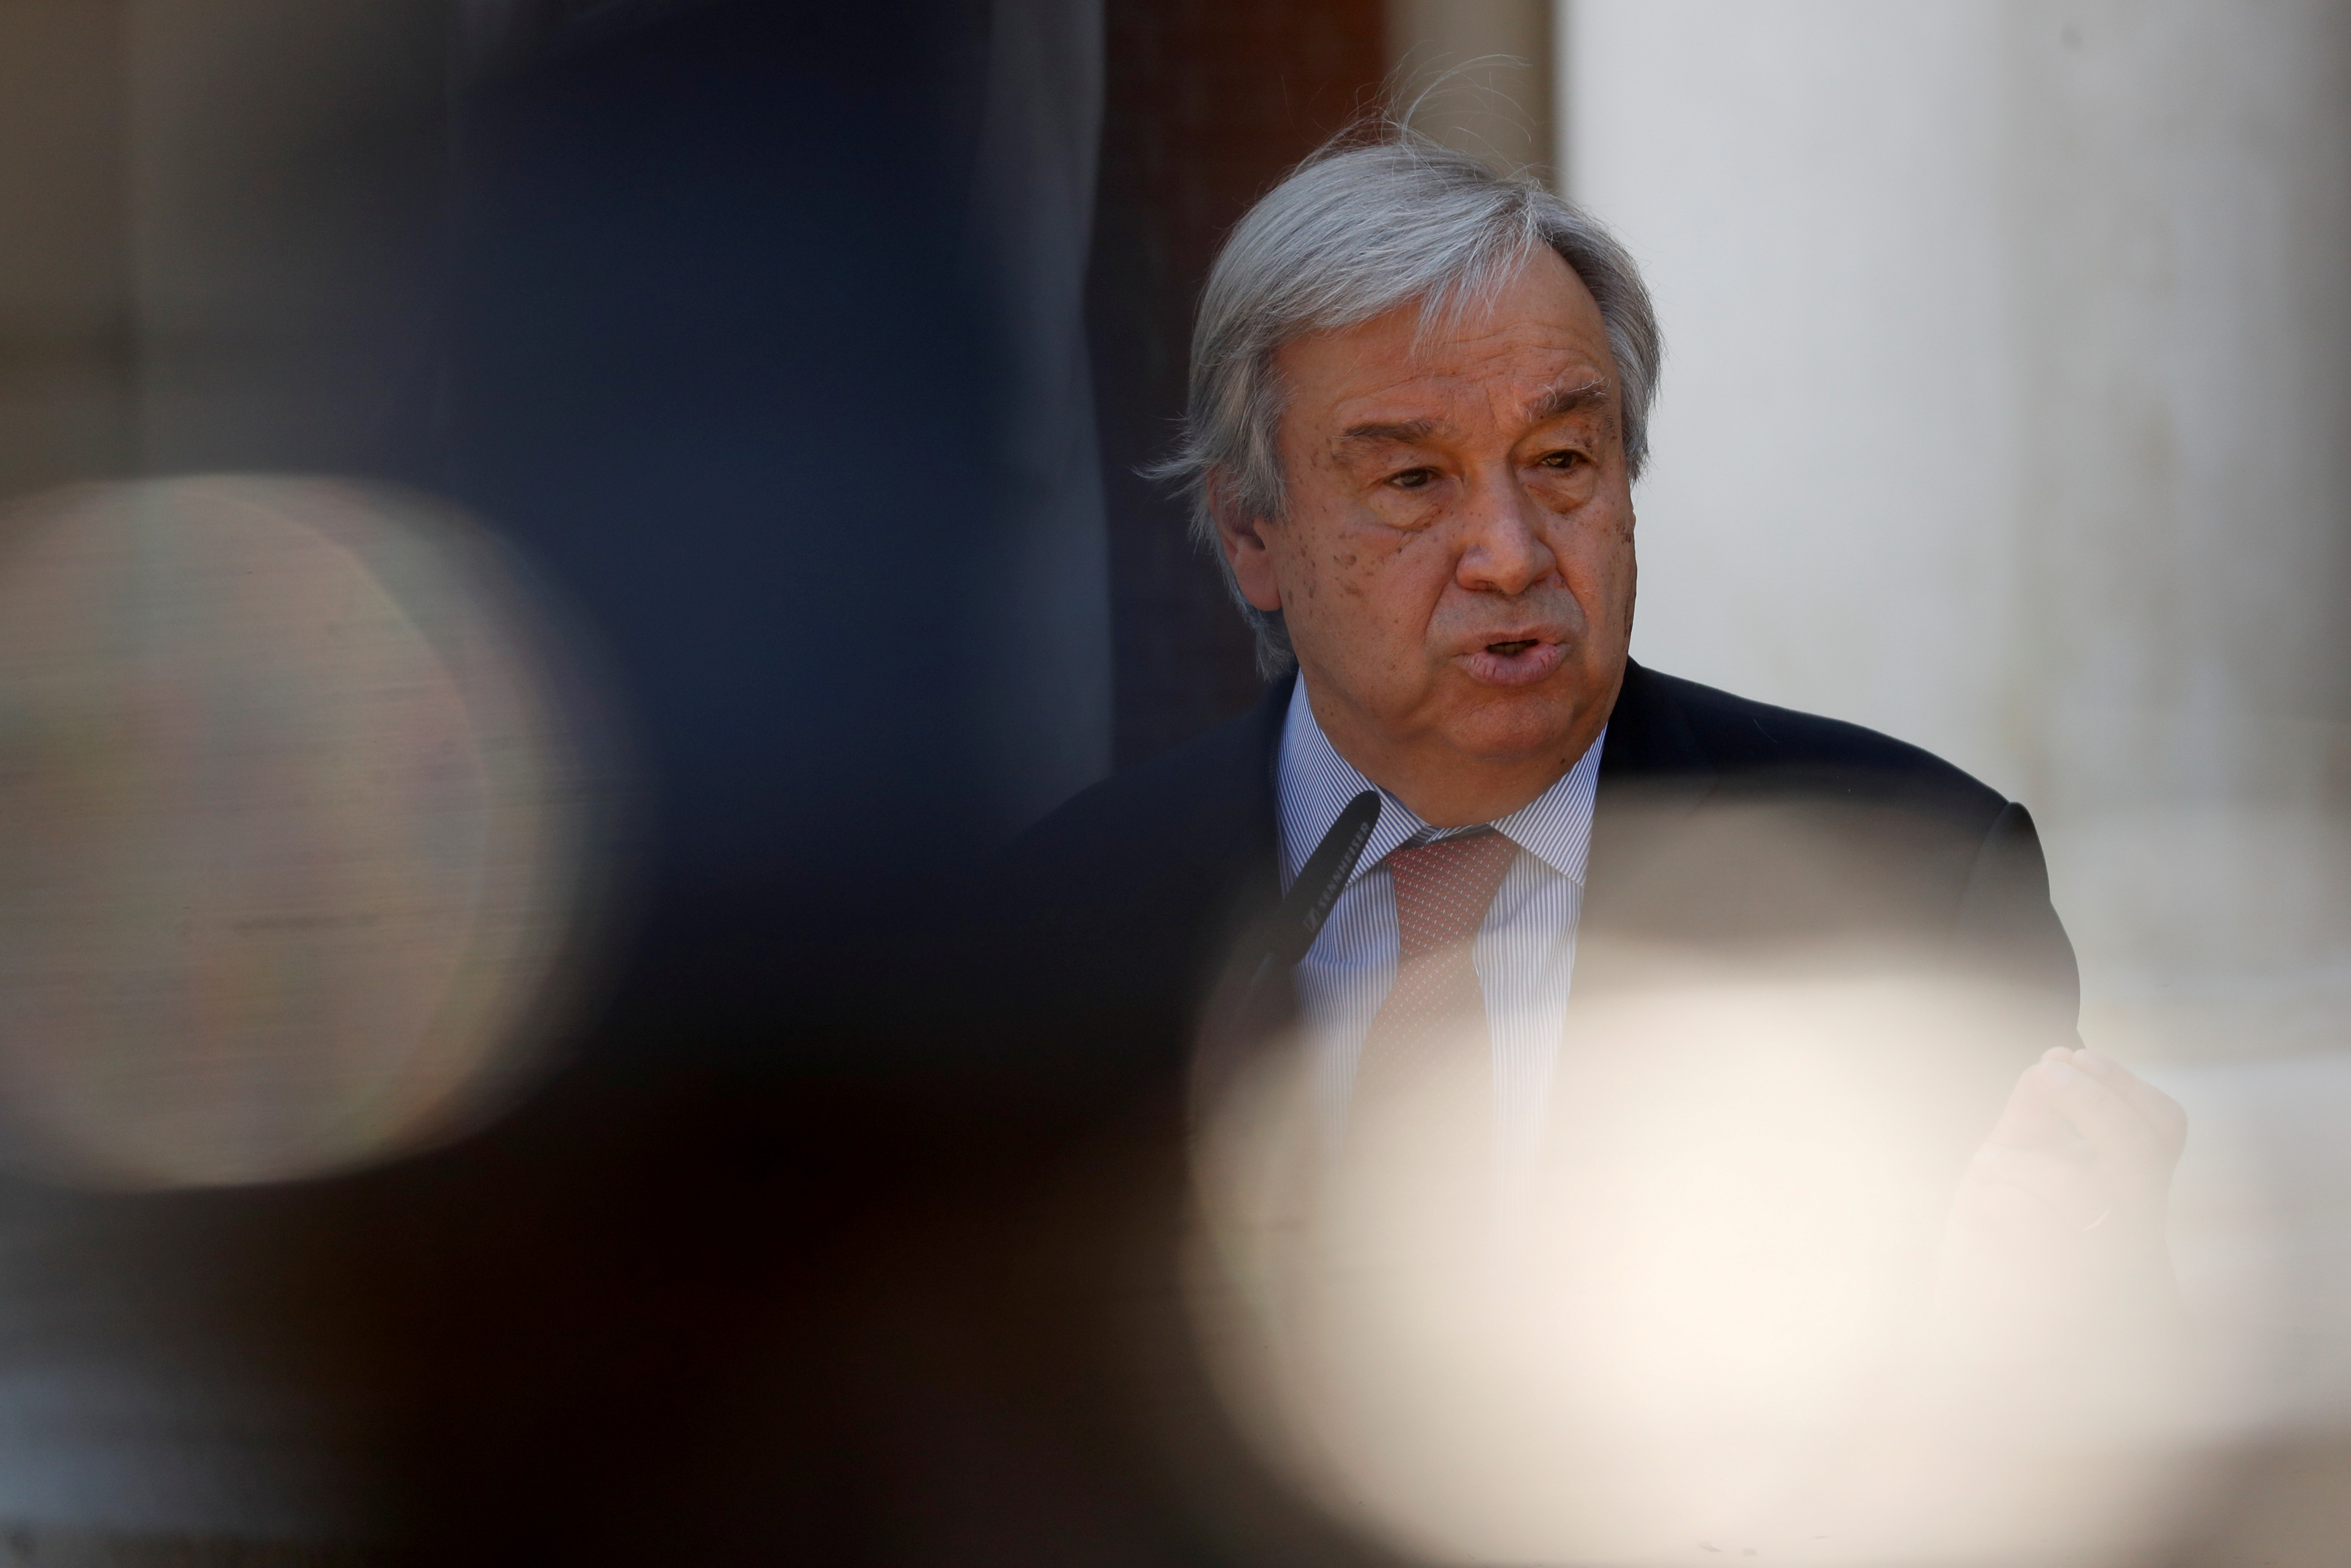 U.N. Secretary-General Antonio Guterres speaks during a news conference before a meeting with Spain's Prime Minister Pedro Sanchez at Moncloa Palace in Madrid, Spain, July 2, 2021. REUTERS/Susana Vera/File Photo